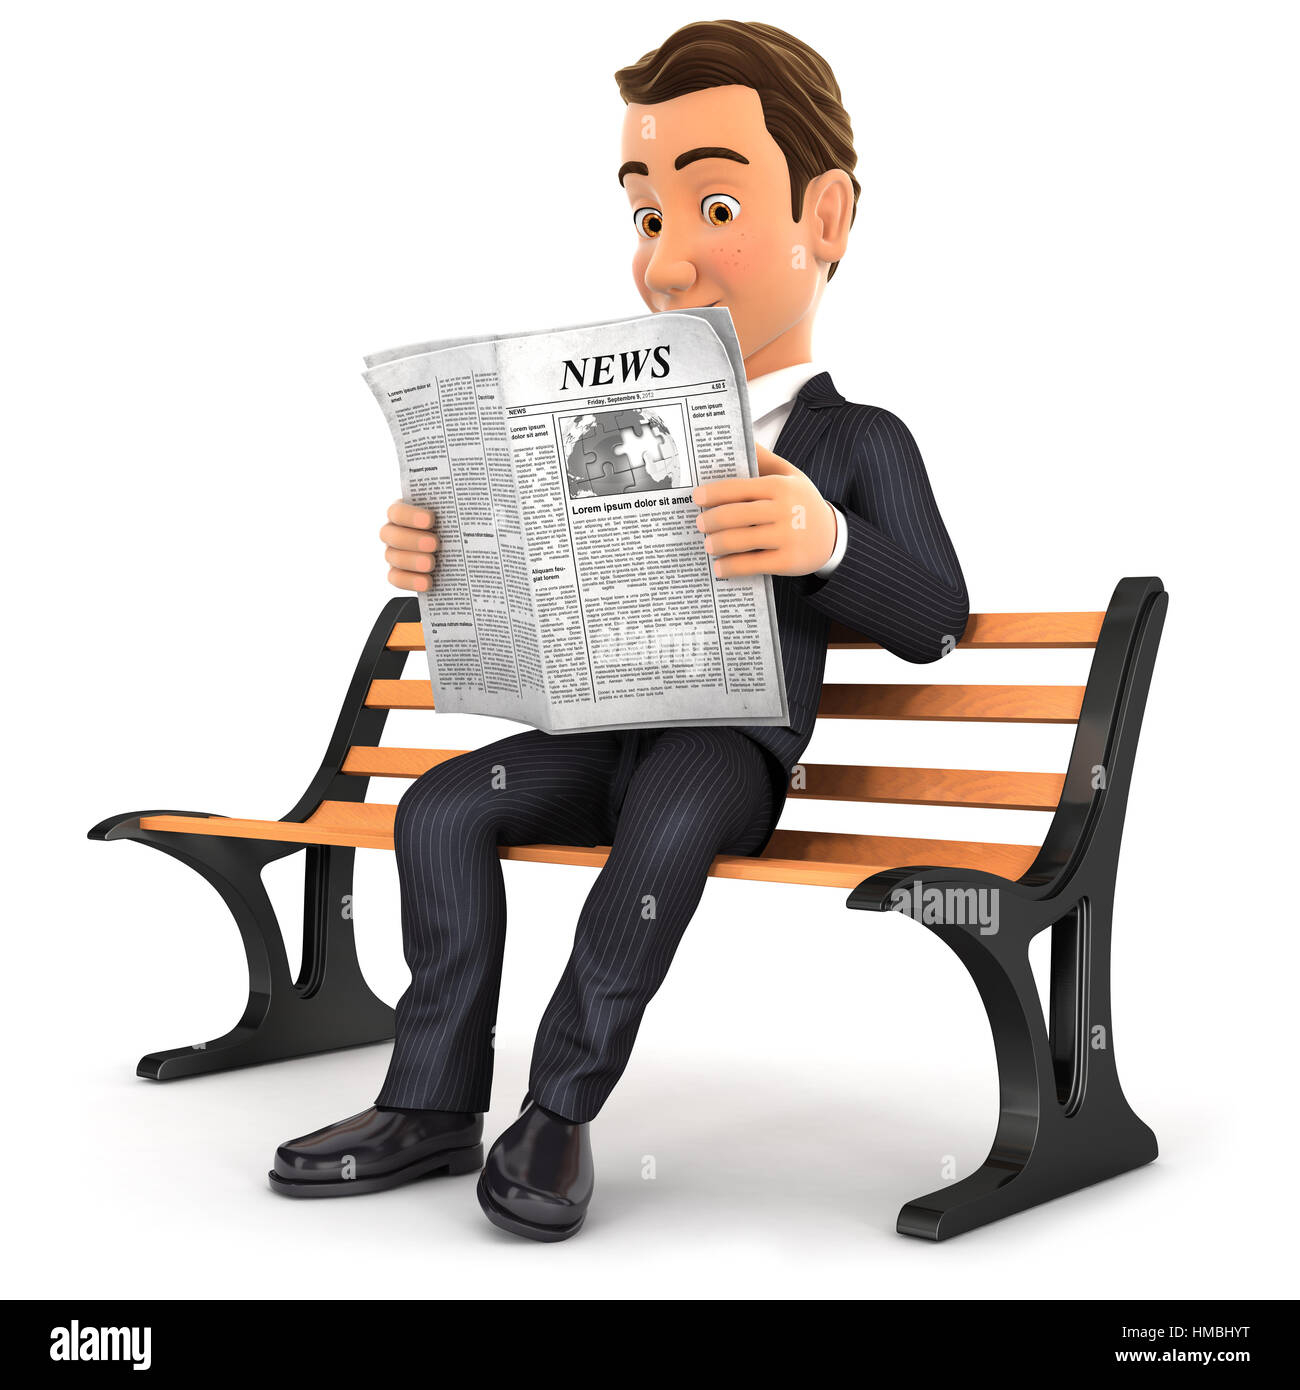 3d businessman reading newspaper on public bench, illustration with isolated white background Stock Photo